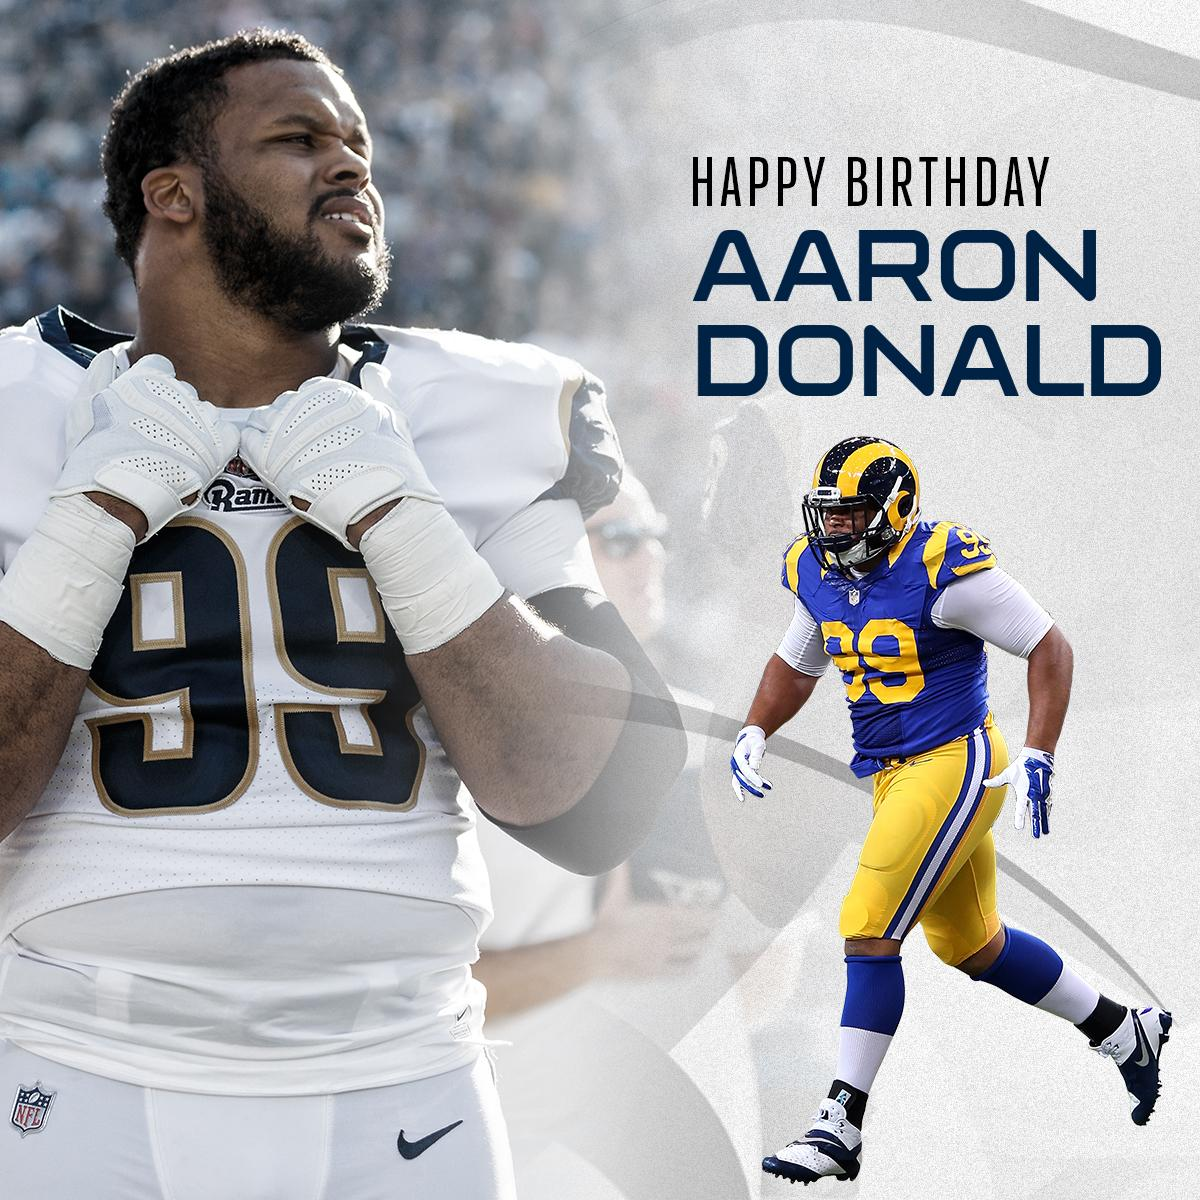 Happy 27th Birthday to the reigning Defensive Player of the Year...@AaronDonald97!! ������ https://t.co/AMv9oRgkym